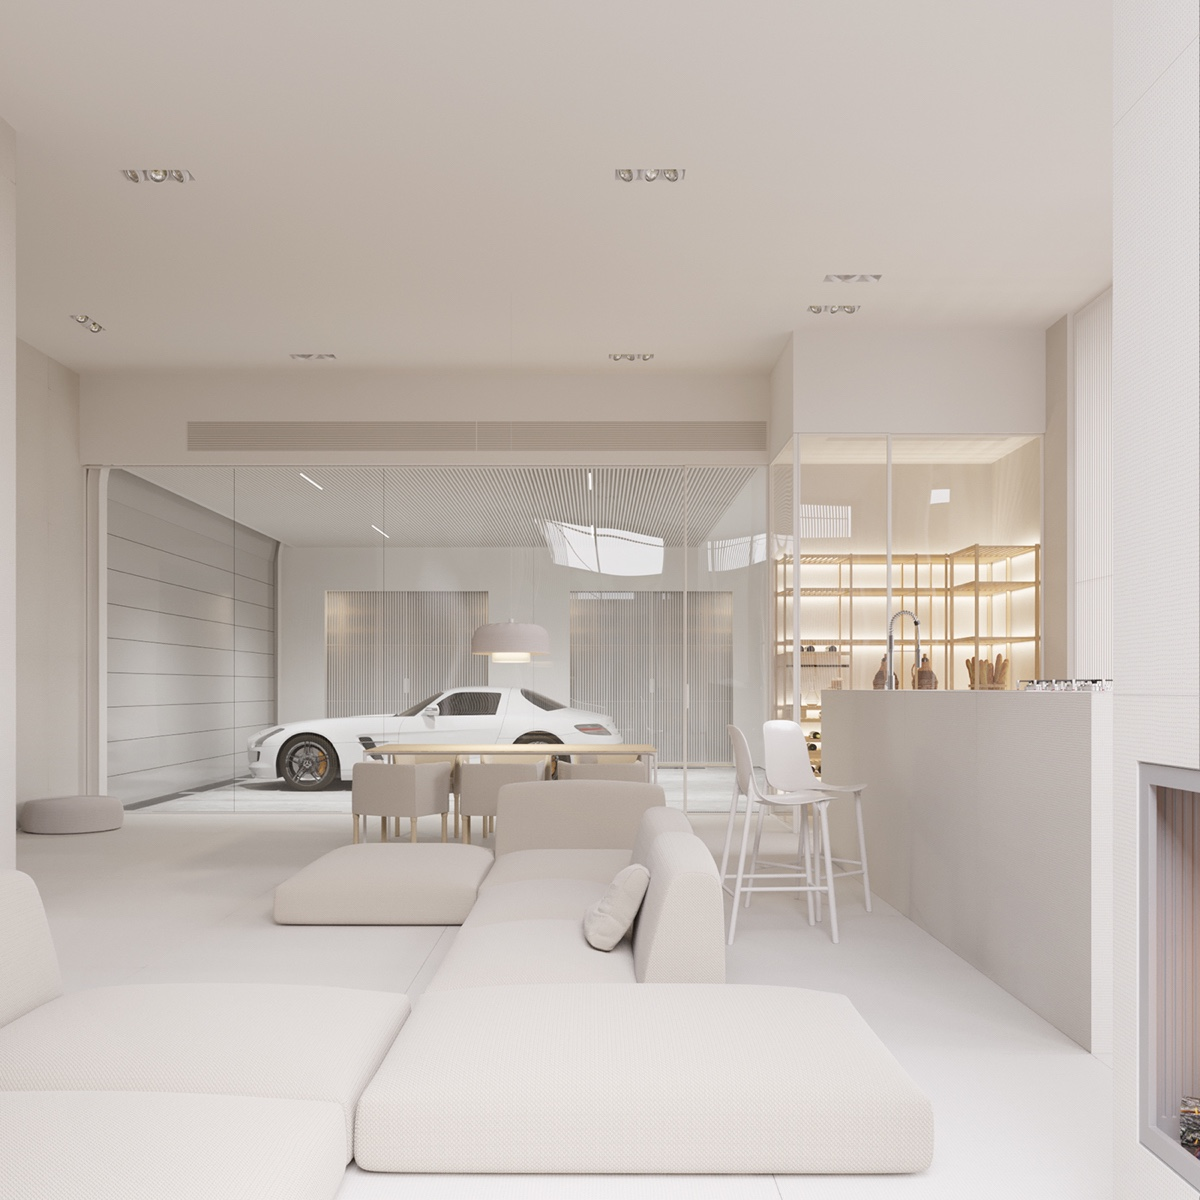 Inside Of A Luxury Home Living Room: A Mesmerizingly Minimalist 4 Bedroom Luxury House By Igor